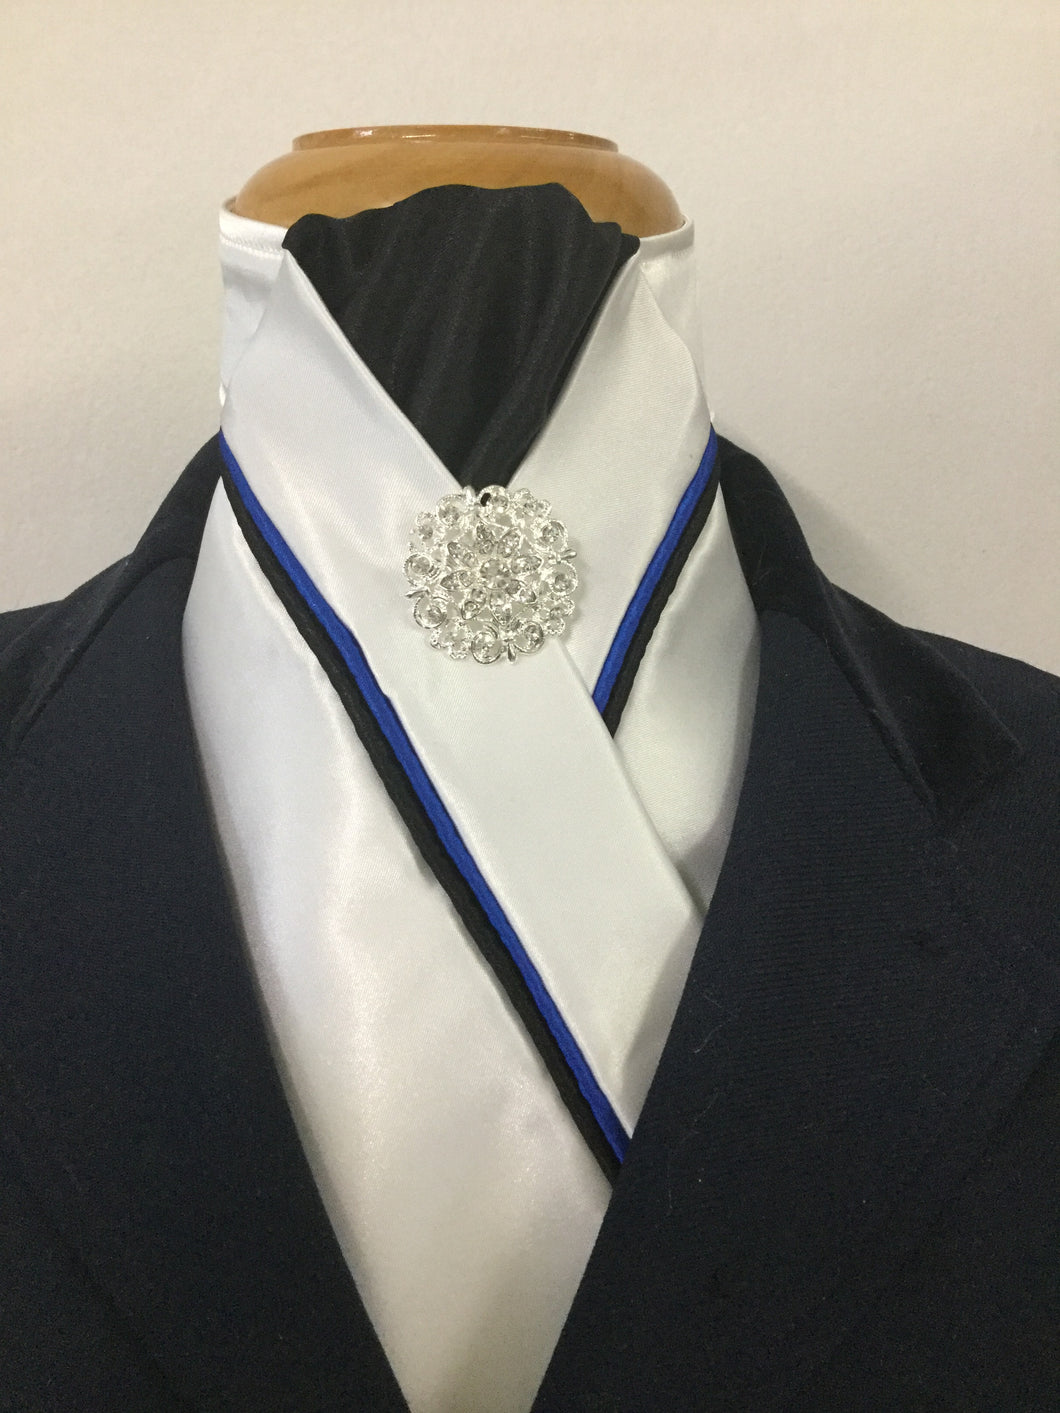 HHD Custom White Satin Pre-tied Stock Tie Black & Royal Blue